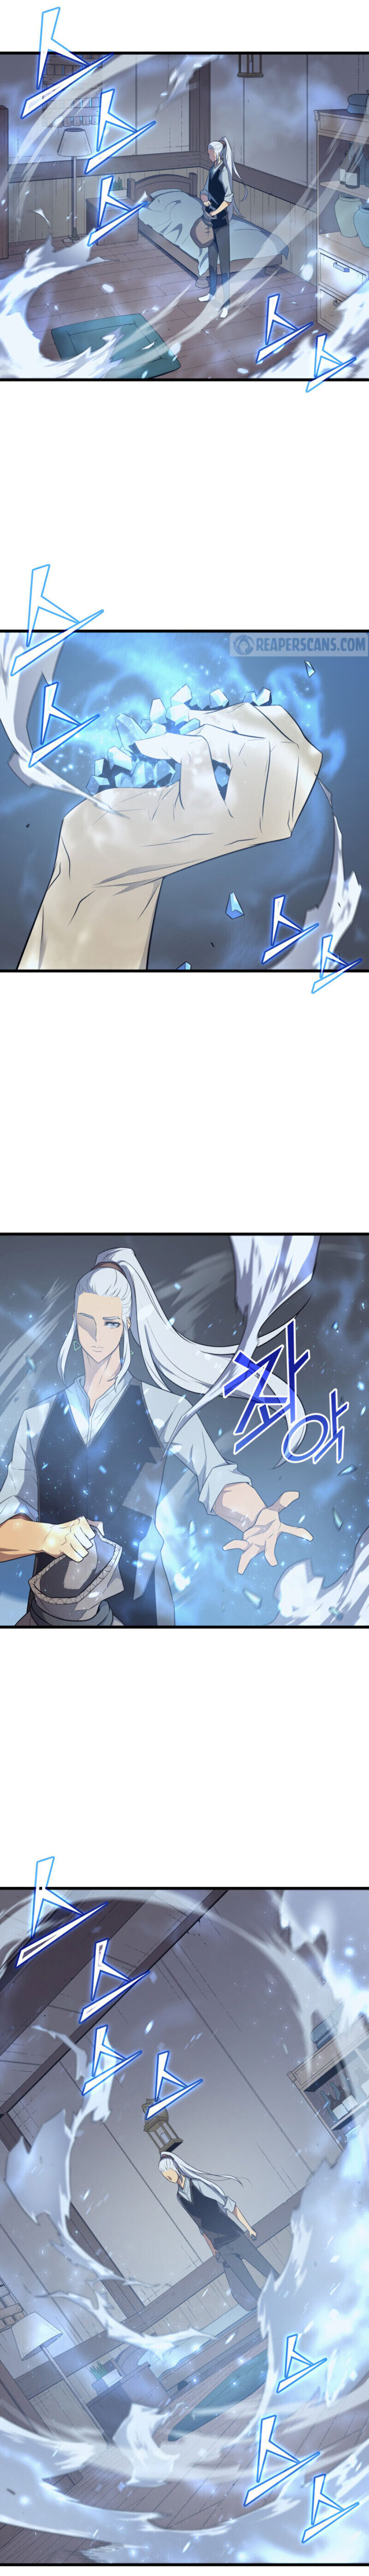 The Great Mage Returns After 4000 Years - chapter 53-eng-li